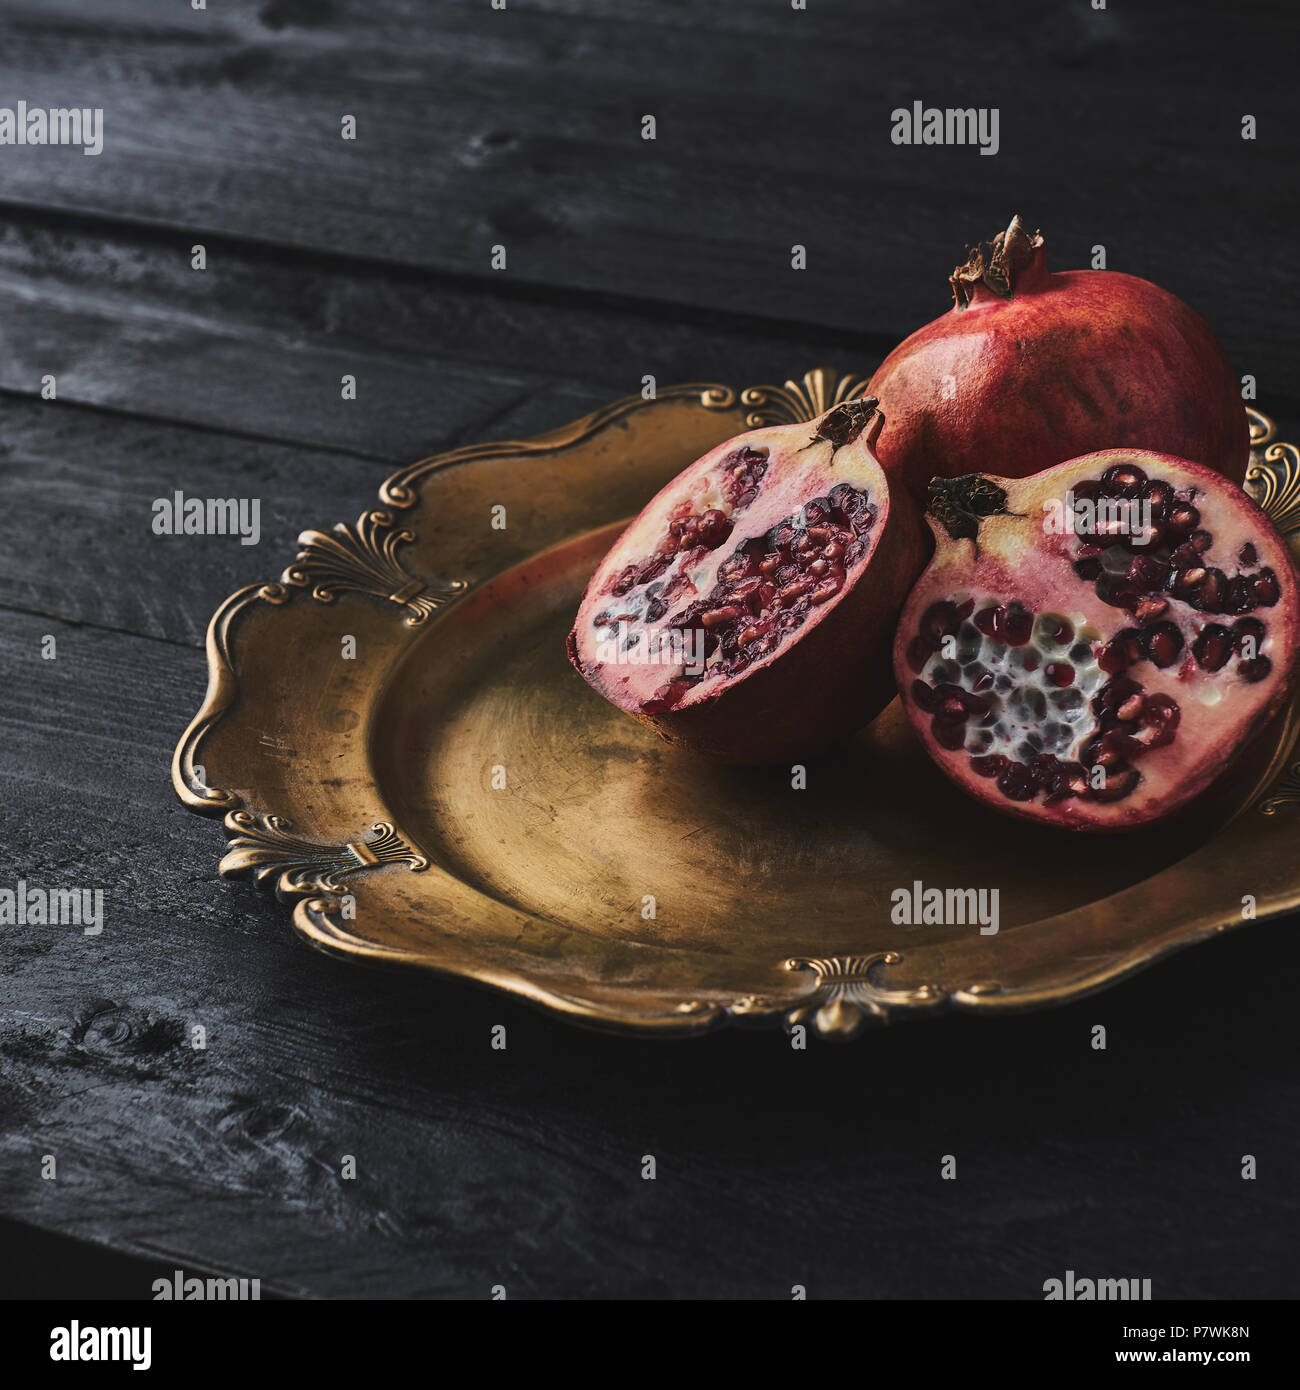 Ripe pomegranate fruit on an old golden serving plate, black wooden vintage background. Narrow depth of field, square crop, copy space. - Stock Image